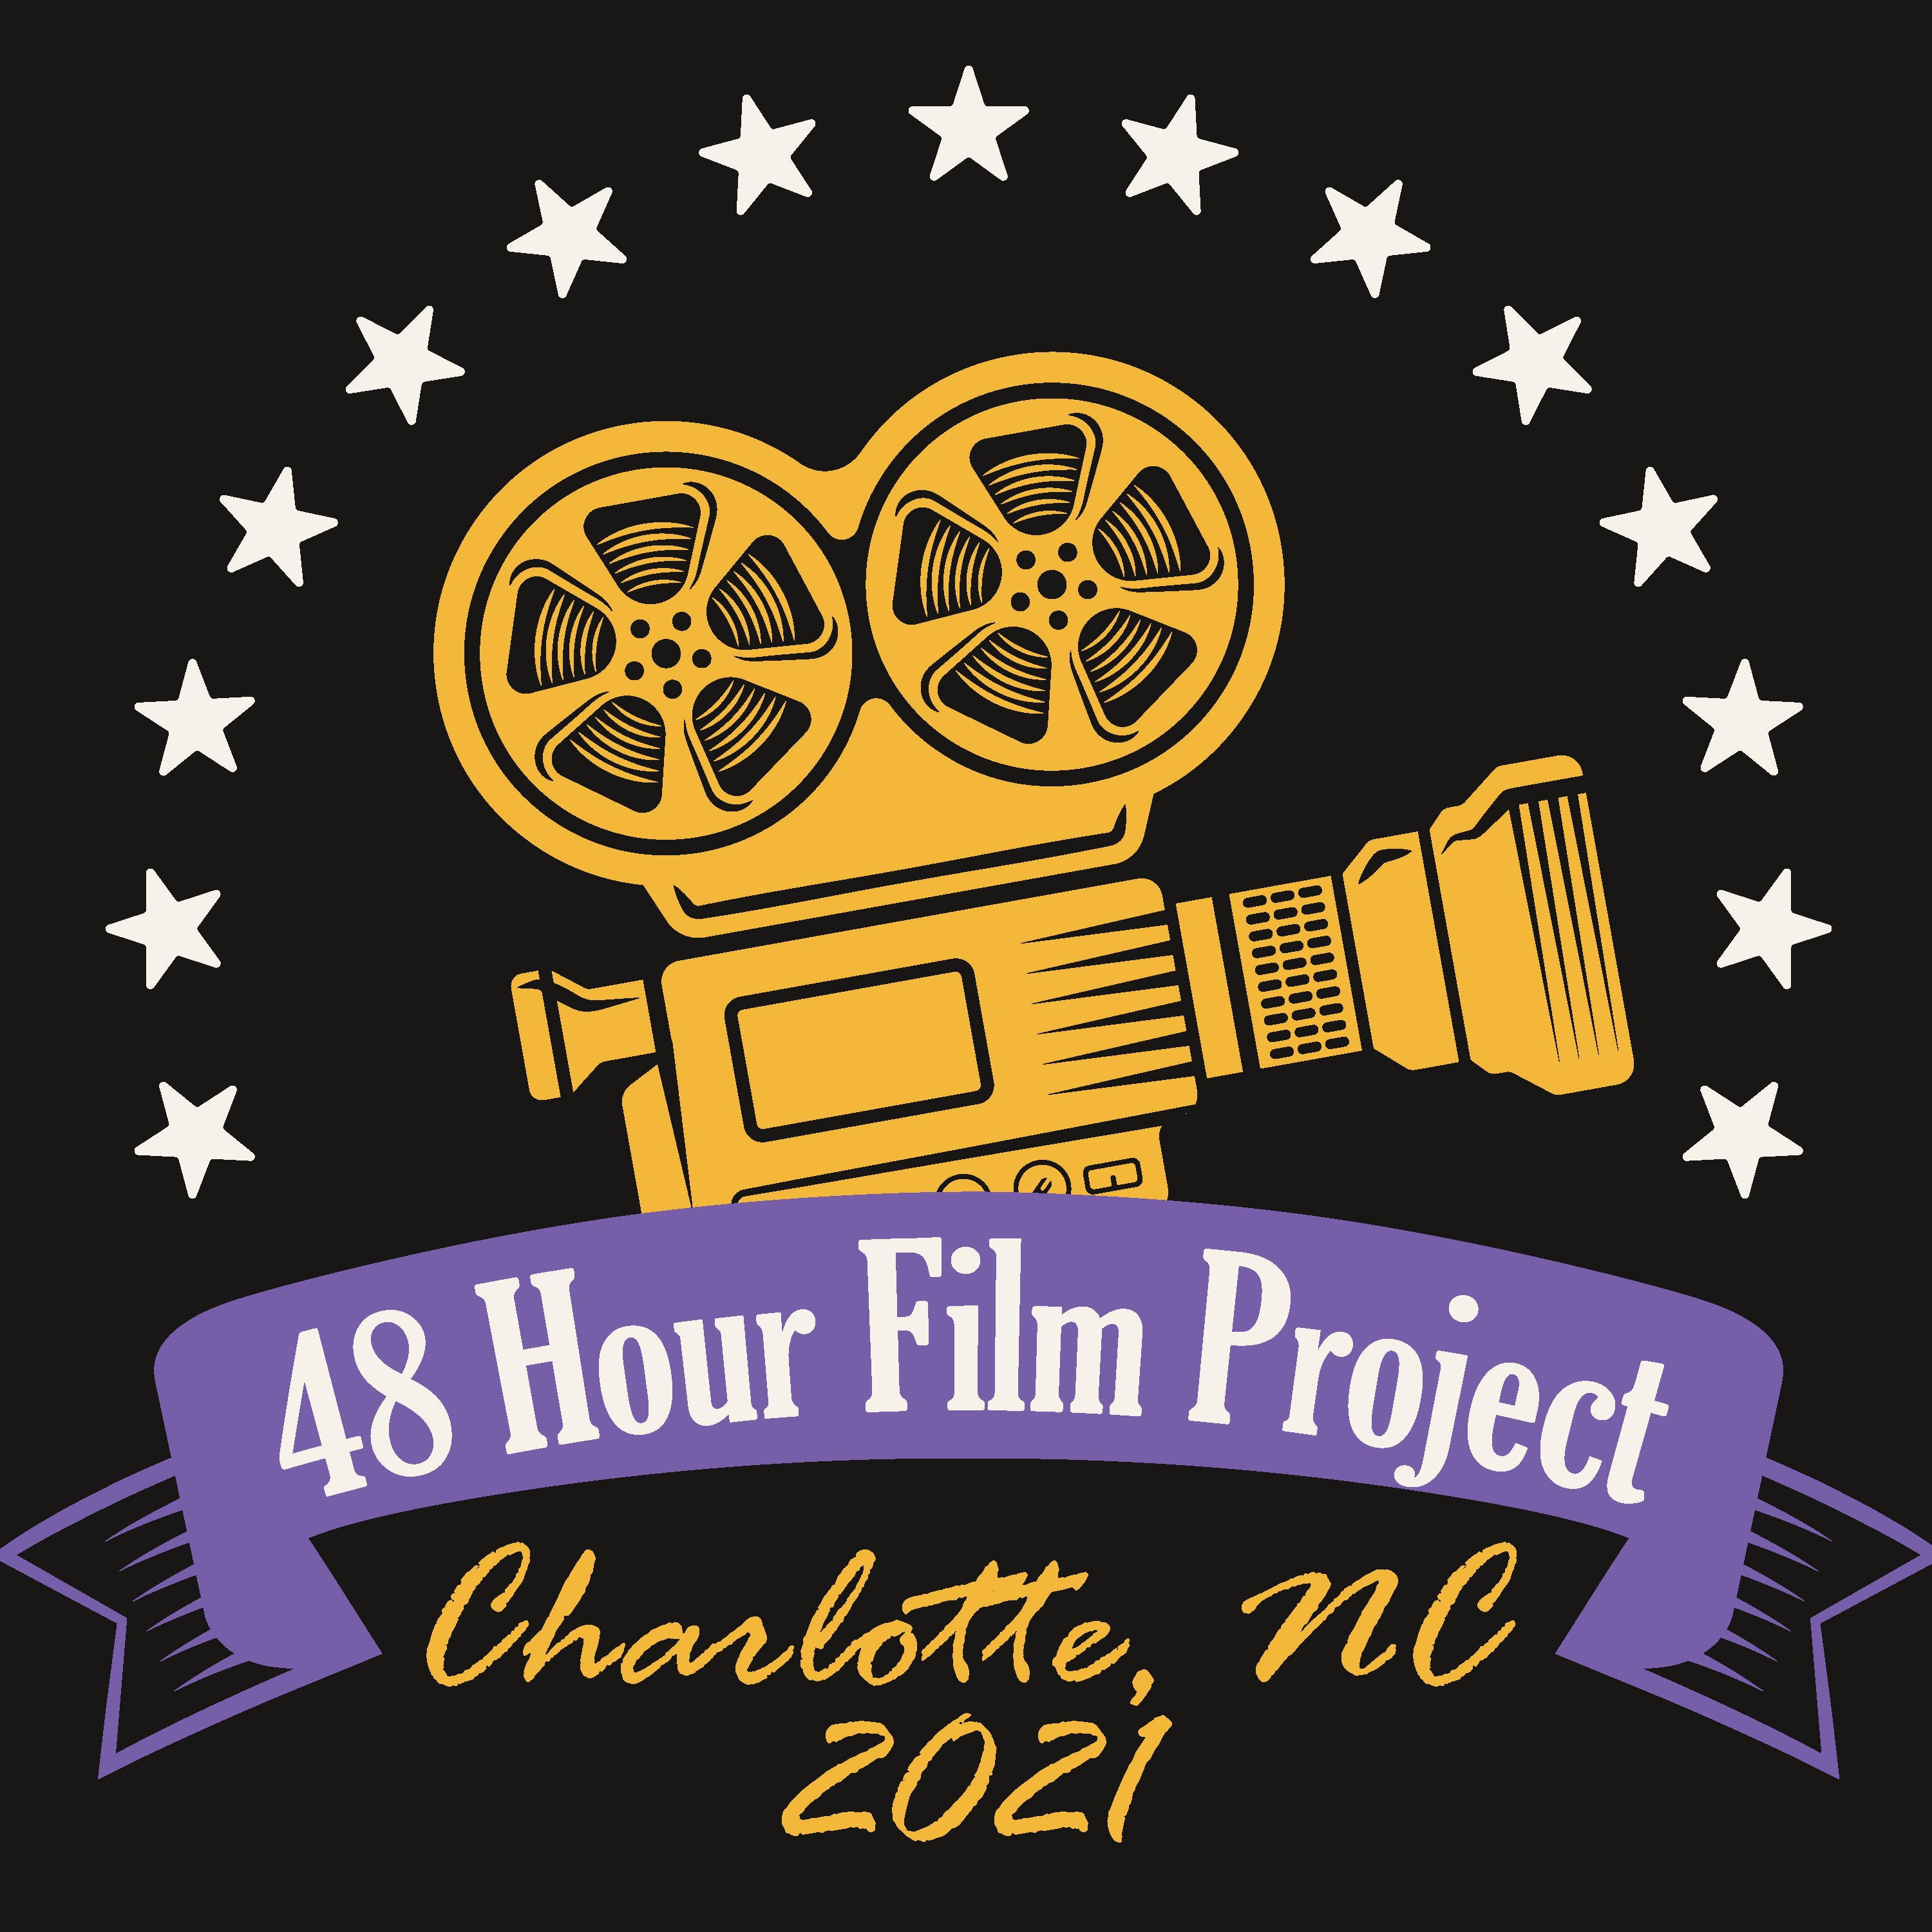 The Charlotte 48 Hour Film Project